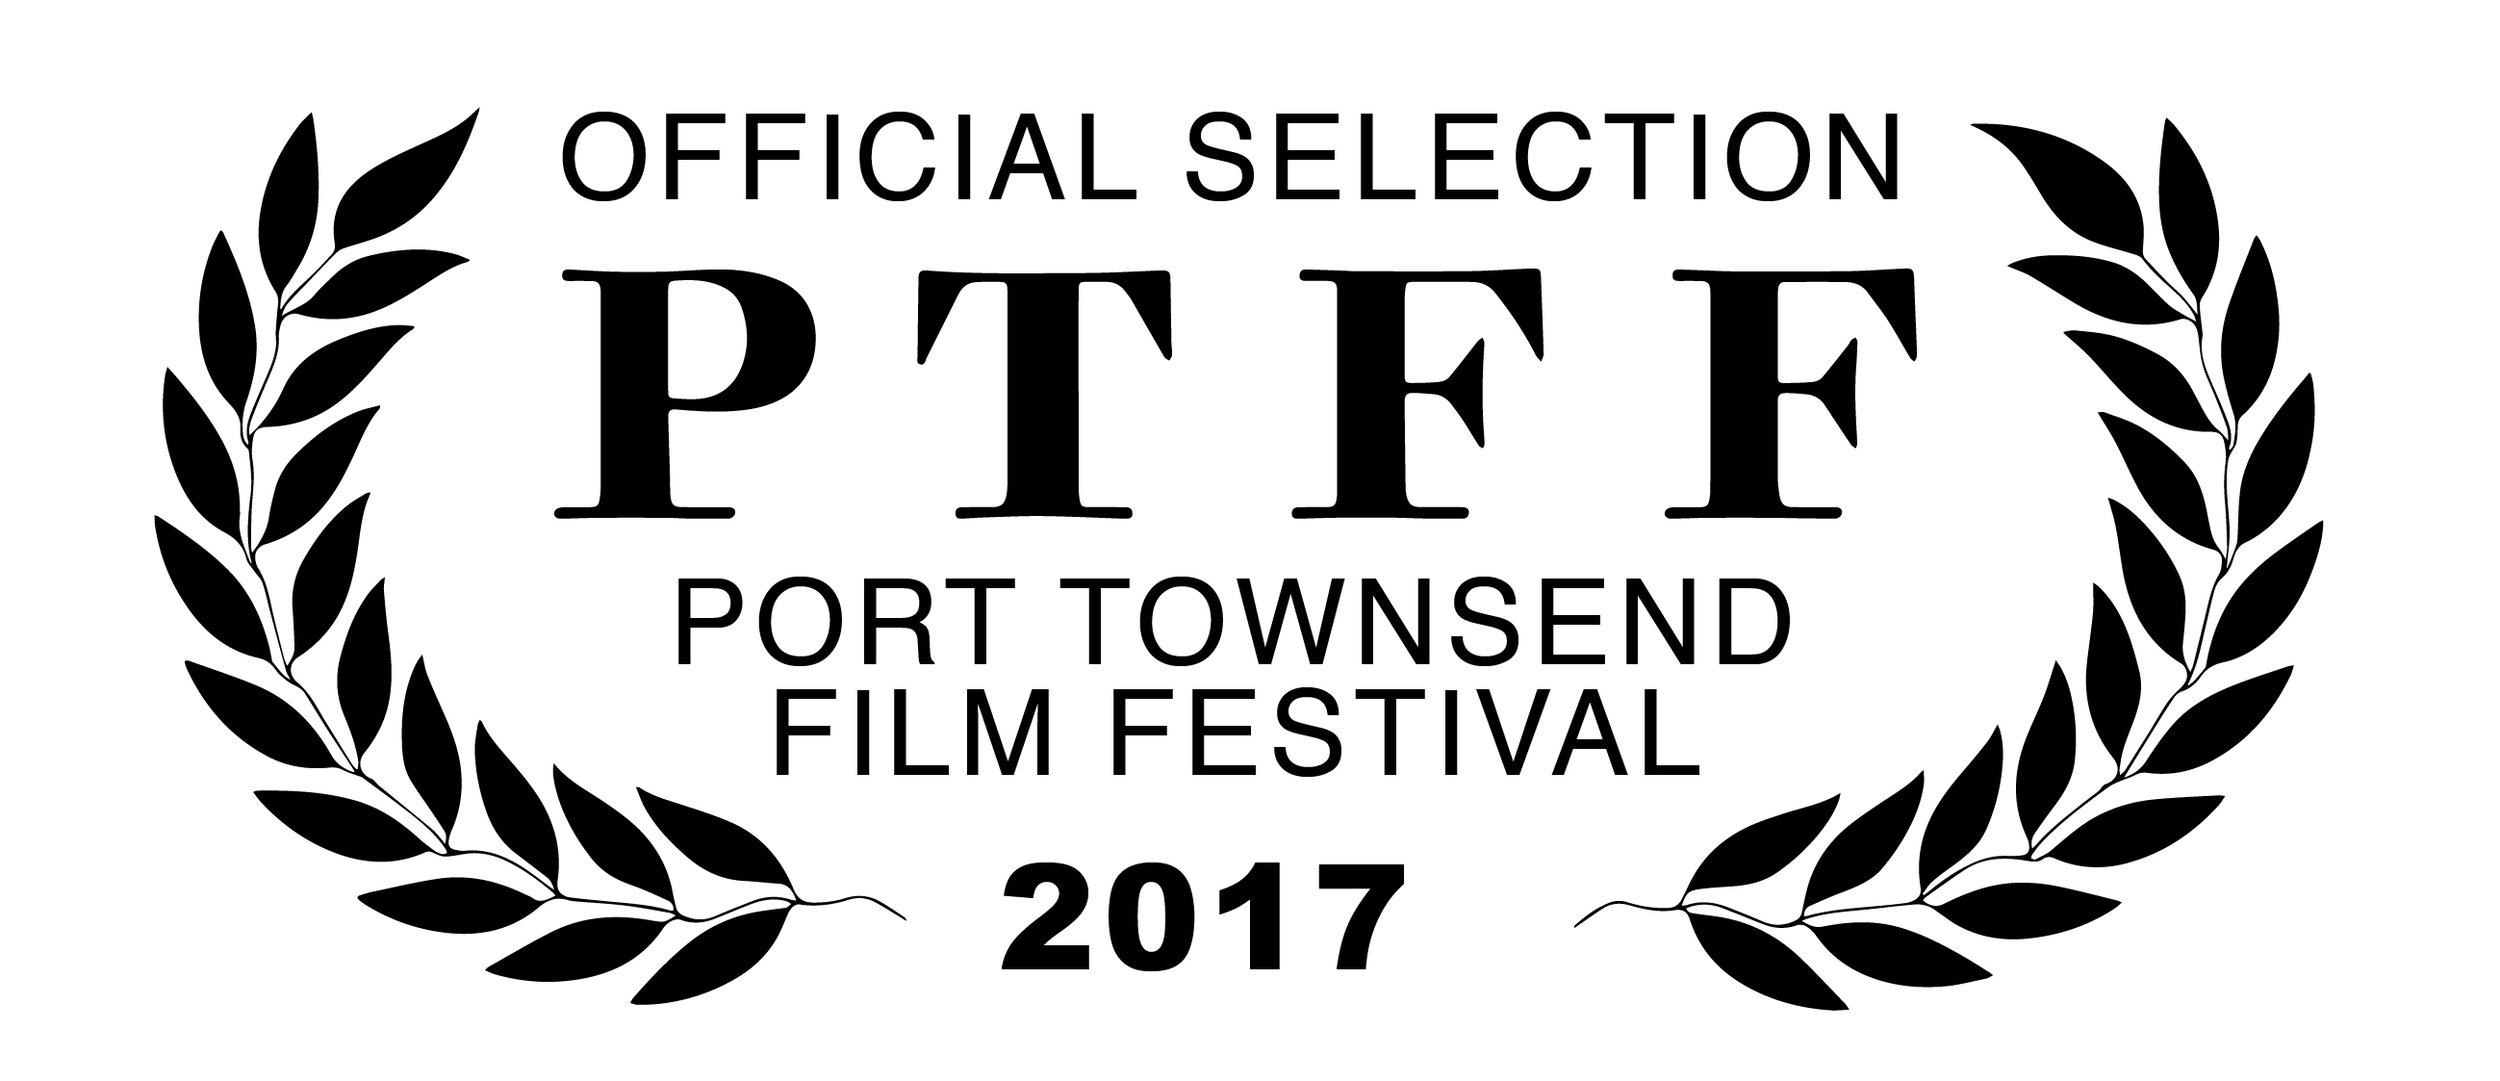 Official Selection-01.jpg